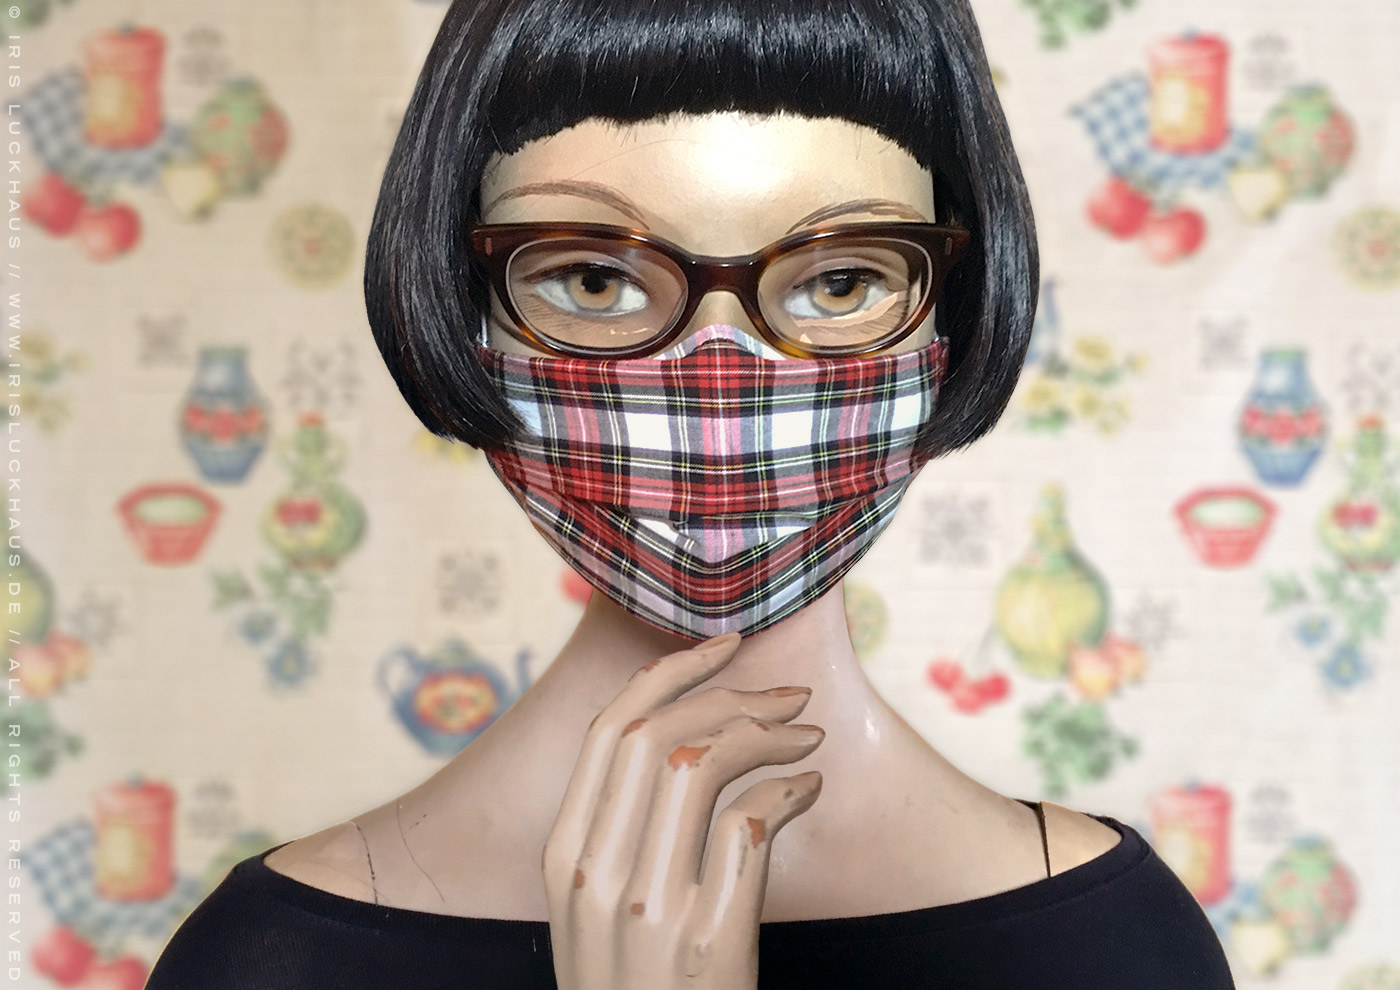 Optimized hybrid cloth mask or fabric face covering as an over mask, outer layer, mask cover or sleeve for a medical FFP2 / KN95 / N95 / PPE or surgical mask; to make or sew yourself with instructions, pattern and template with reverse nose pleat for glasses, filter opening for space and drawstring channels with ear loops and head ties for a a gapless fit by Iris Luckhaus